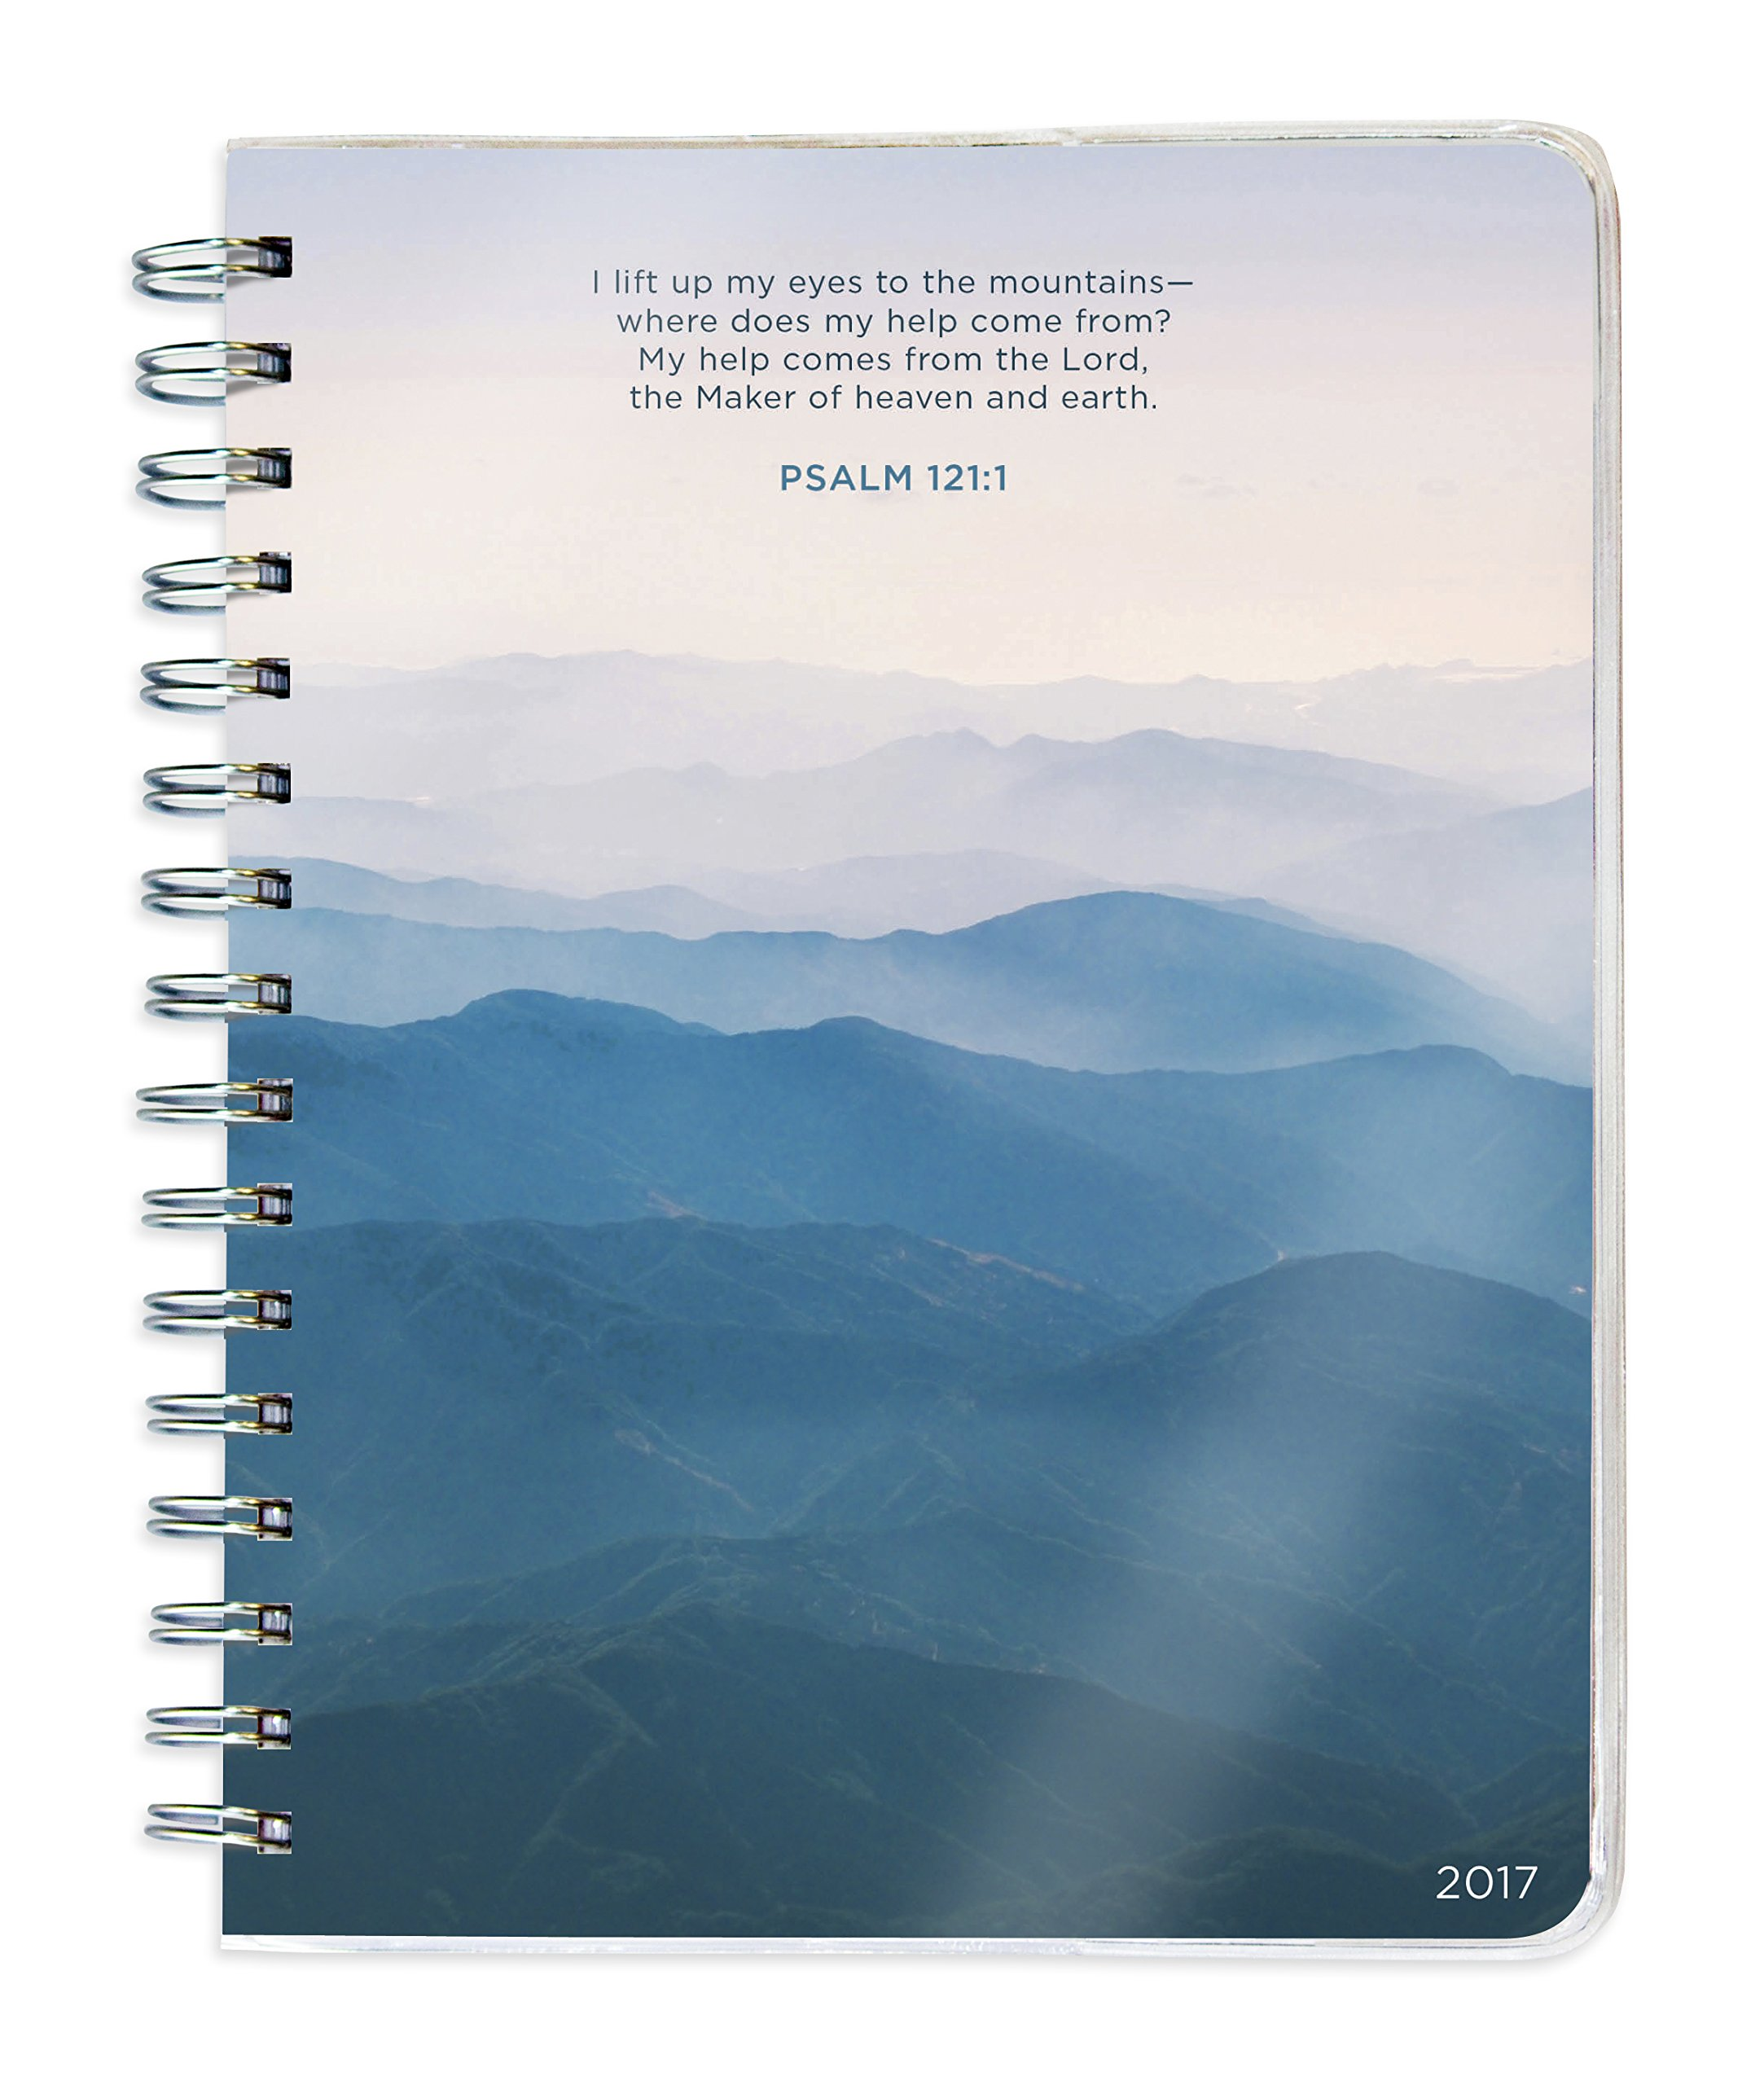 psalms 17 month 2016 planner